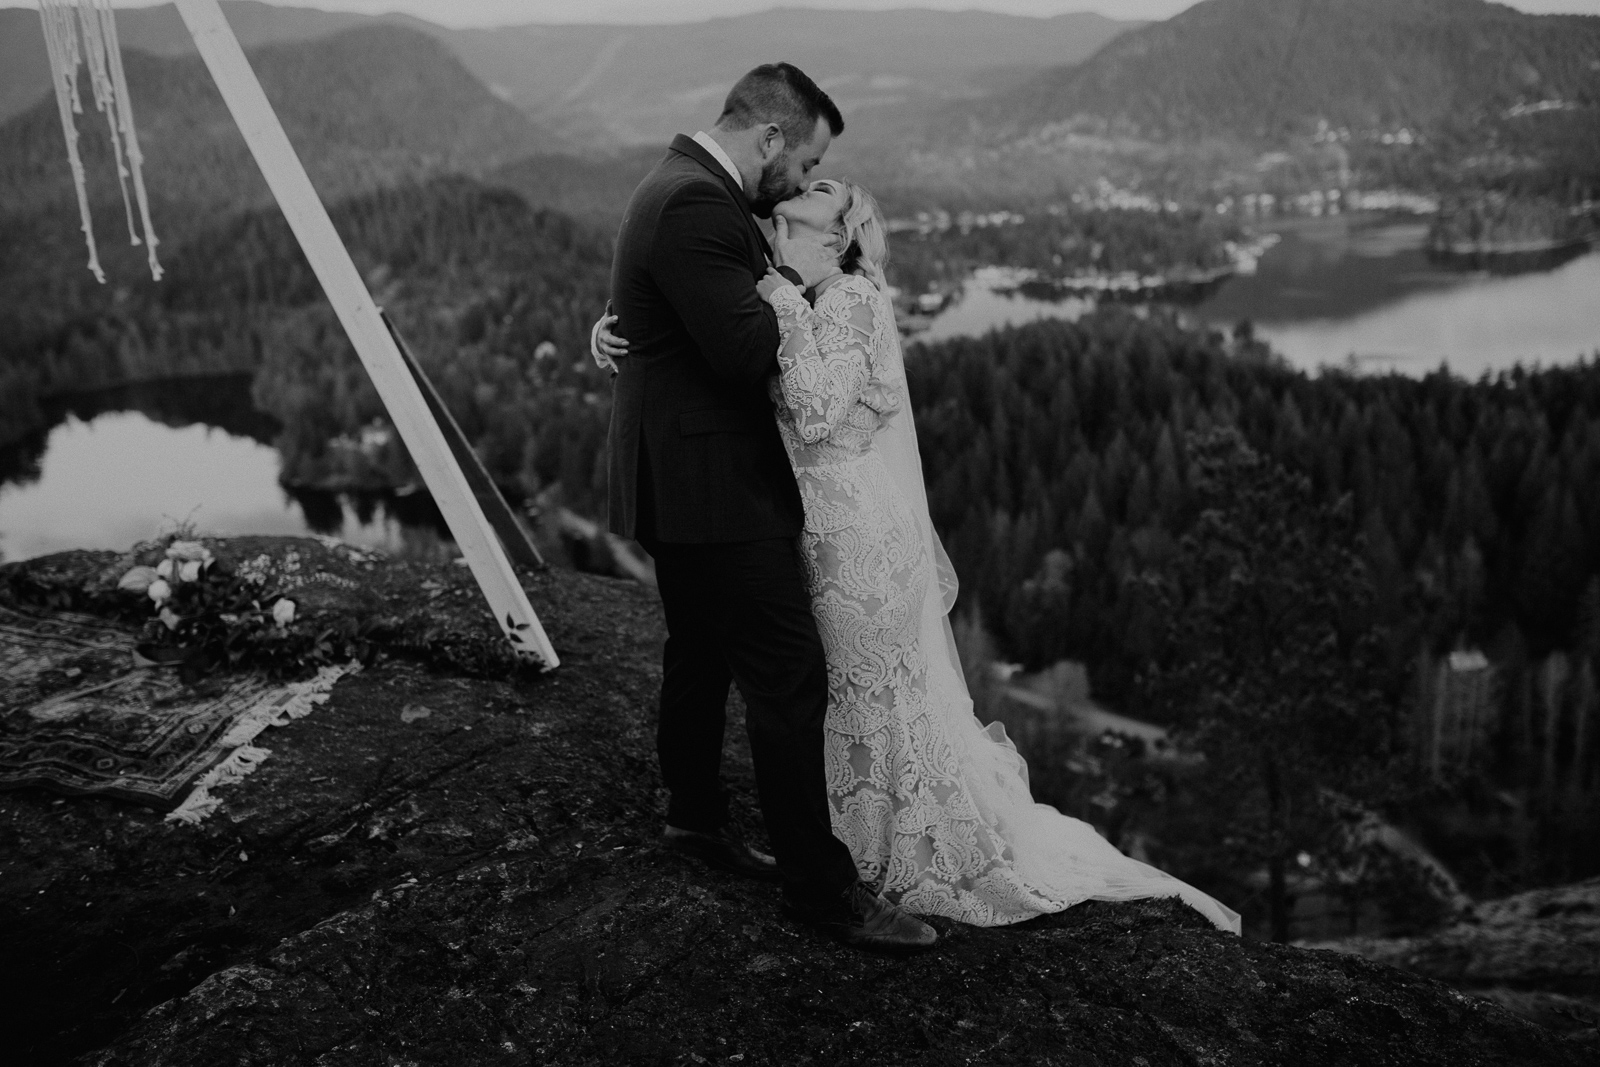 Luke Lambertson Photo_BritishColumbia_Canada_AdventurousCouple_Elopement_IMG-8461-2.jpg